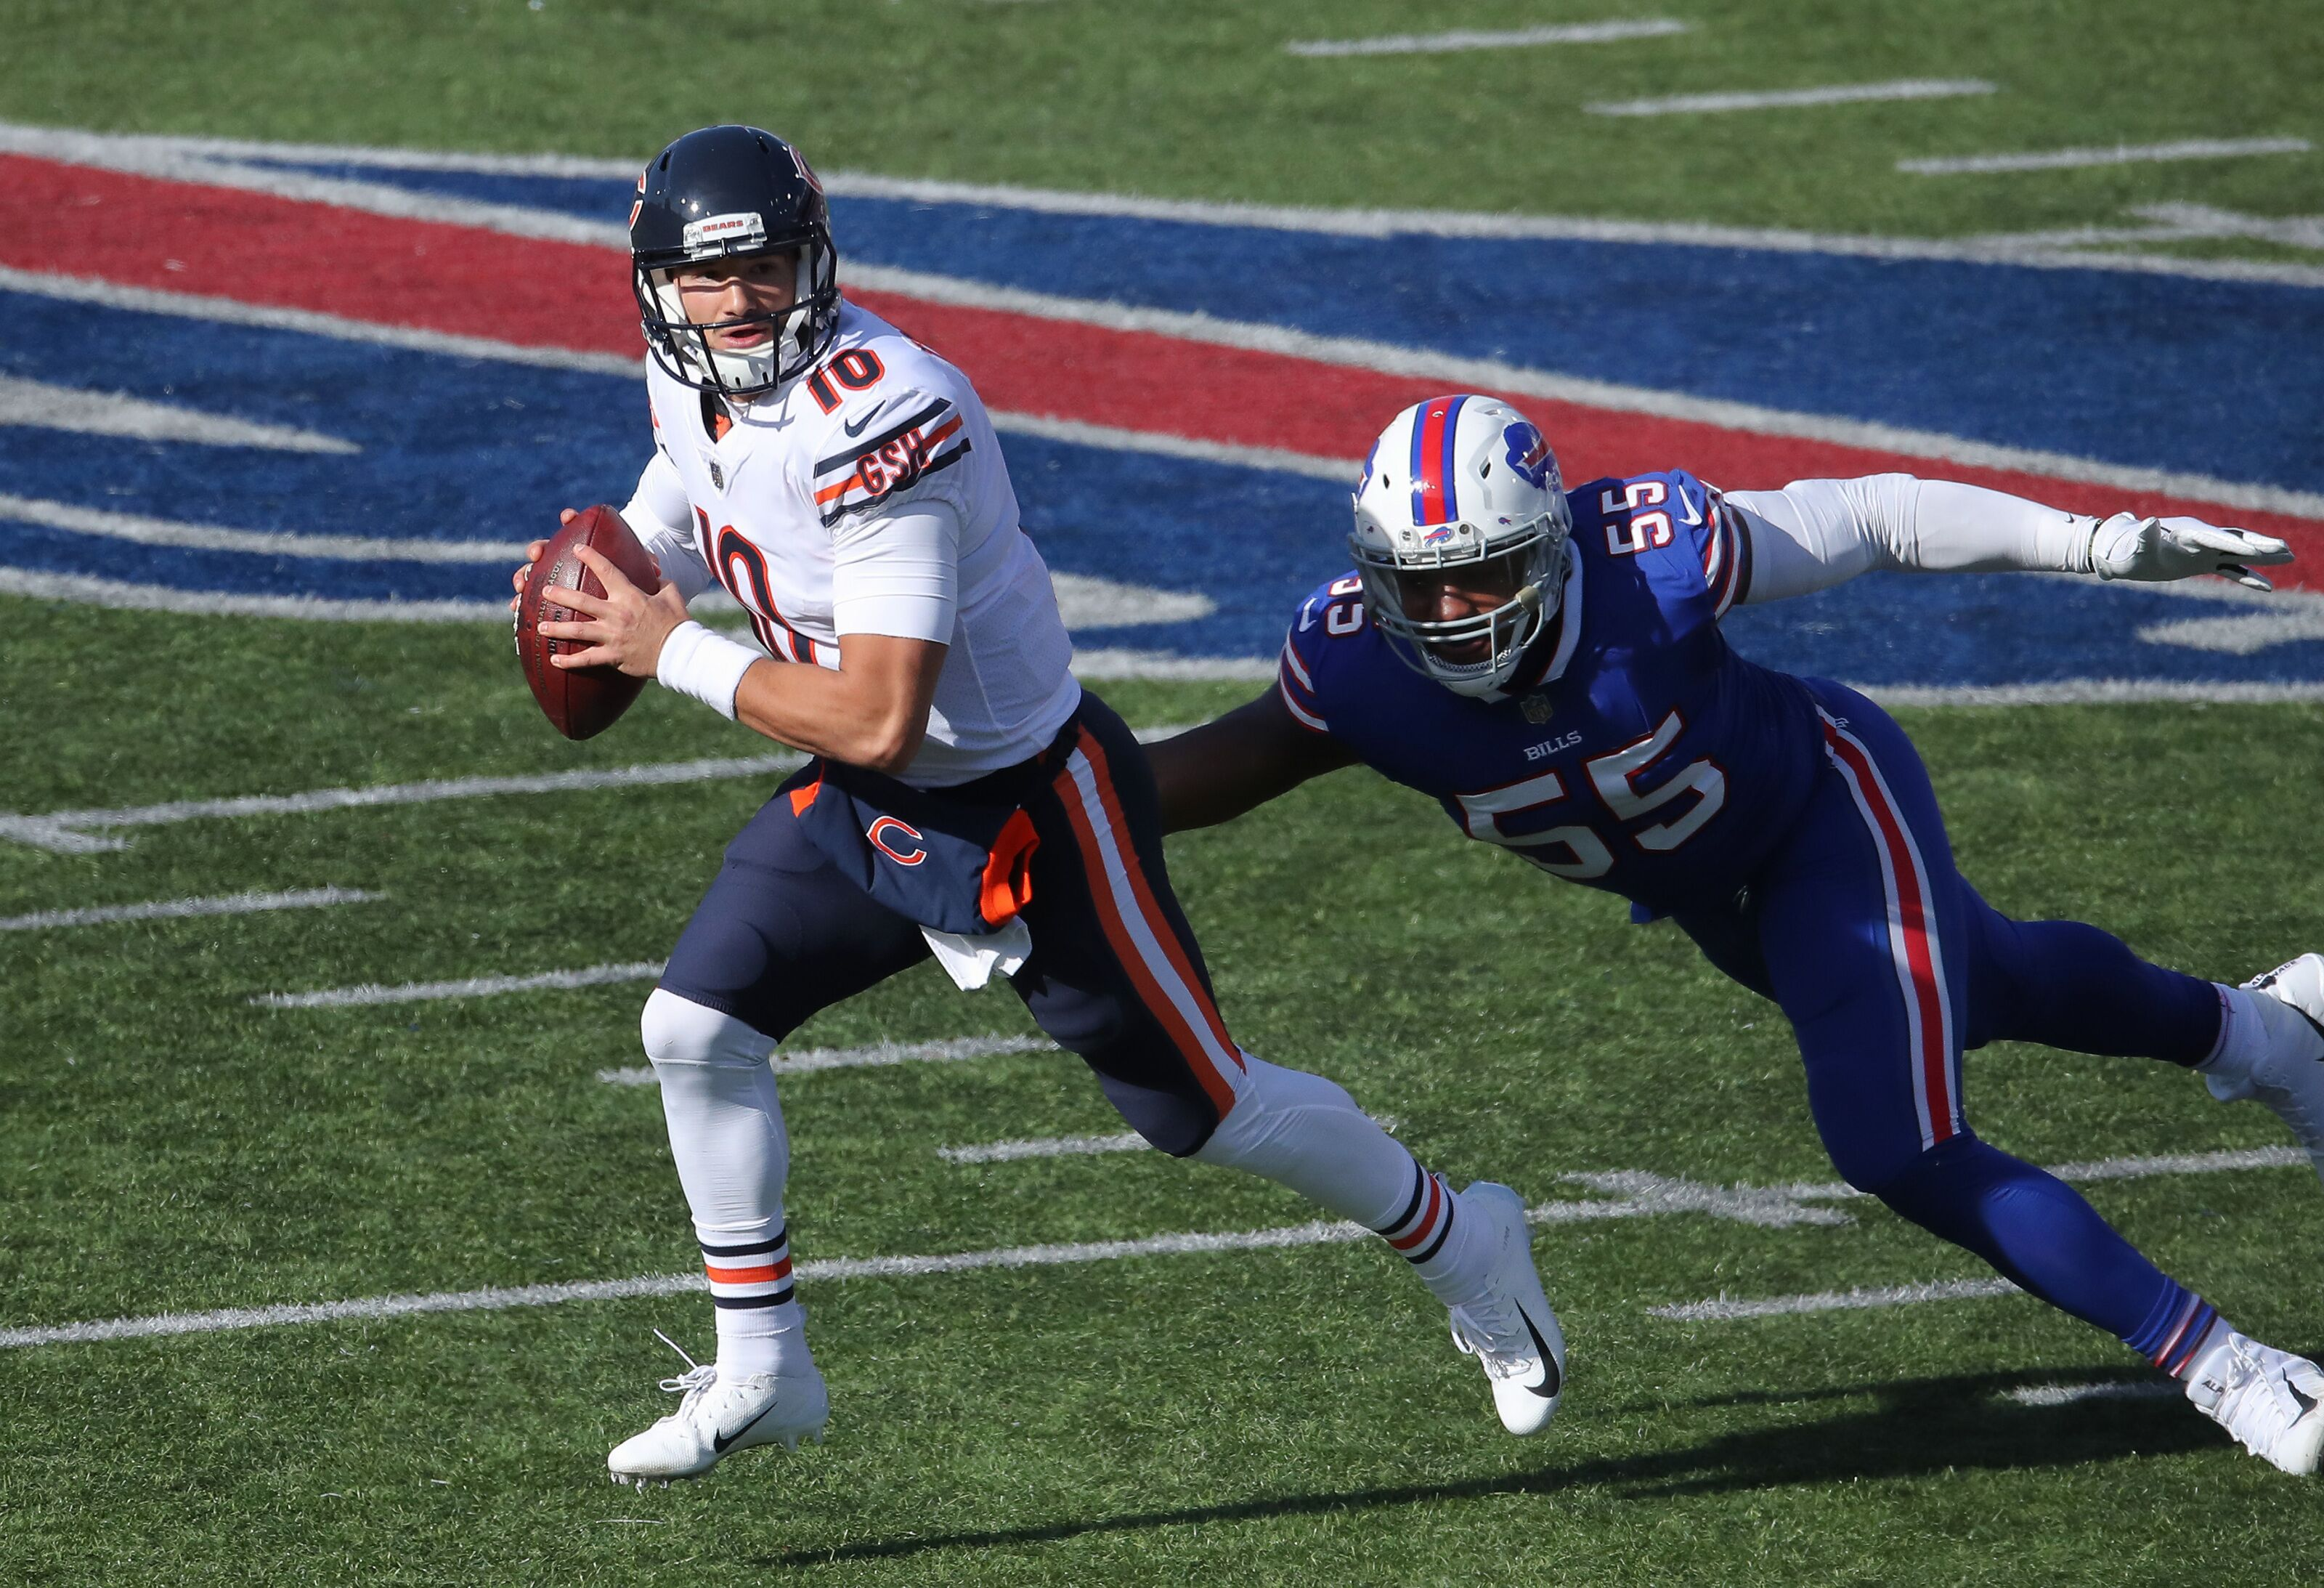 Chicago Bears: Can Mitch Trubisky explode on Vikings defense?